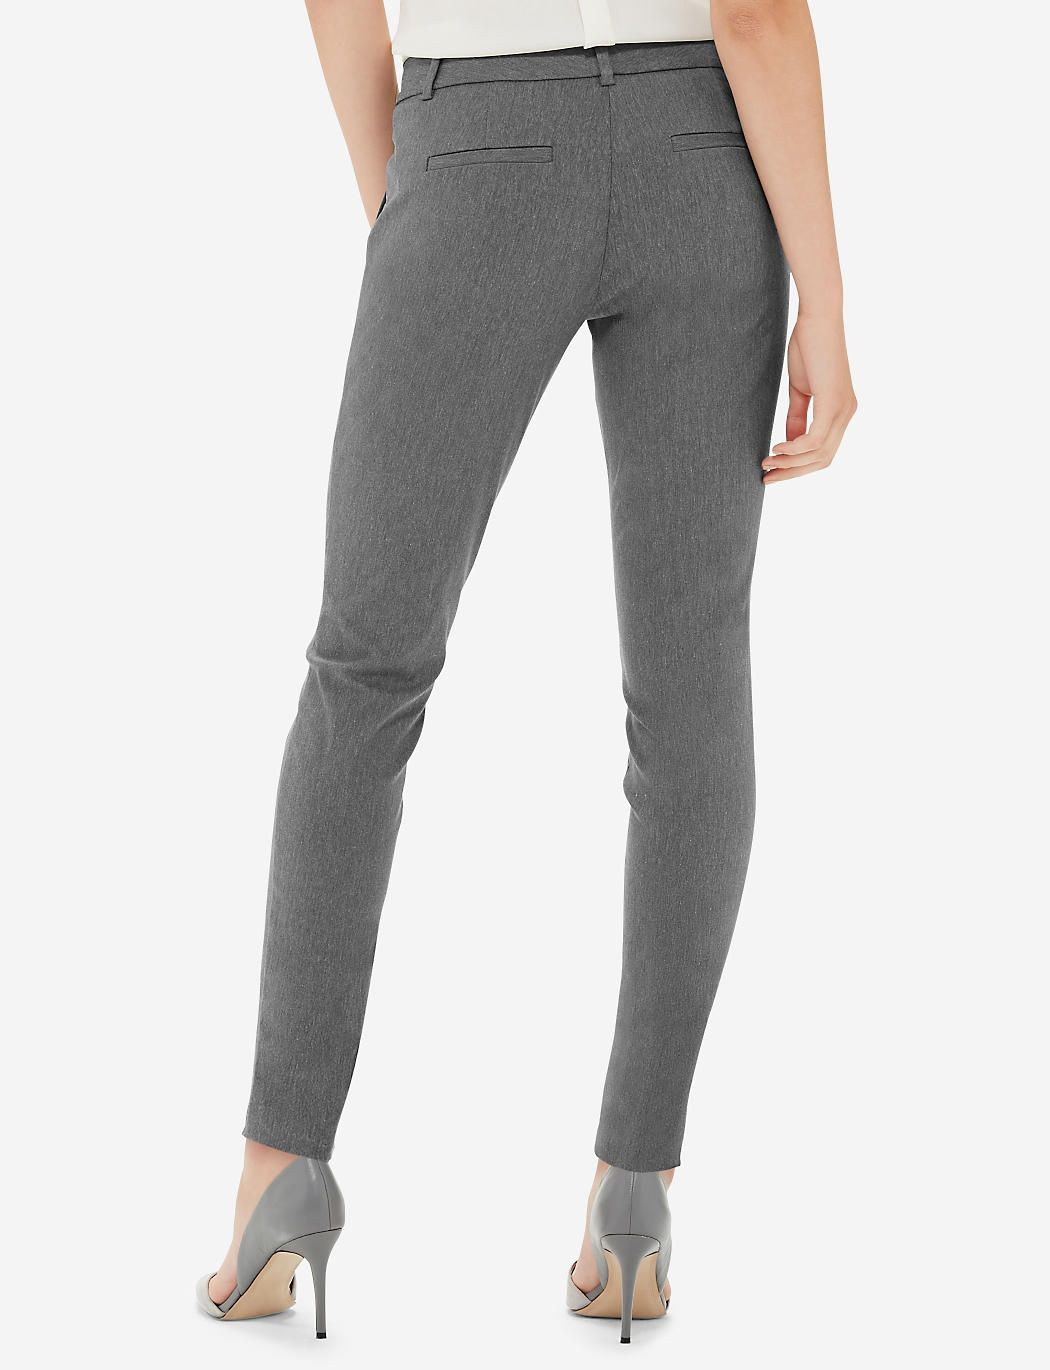 d8a49a9034 Exact Stretch Skinny Pants | Color: $48.96 Old Price: $69.95 Grey Selected  Color: Grey | THE LIMITED